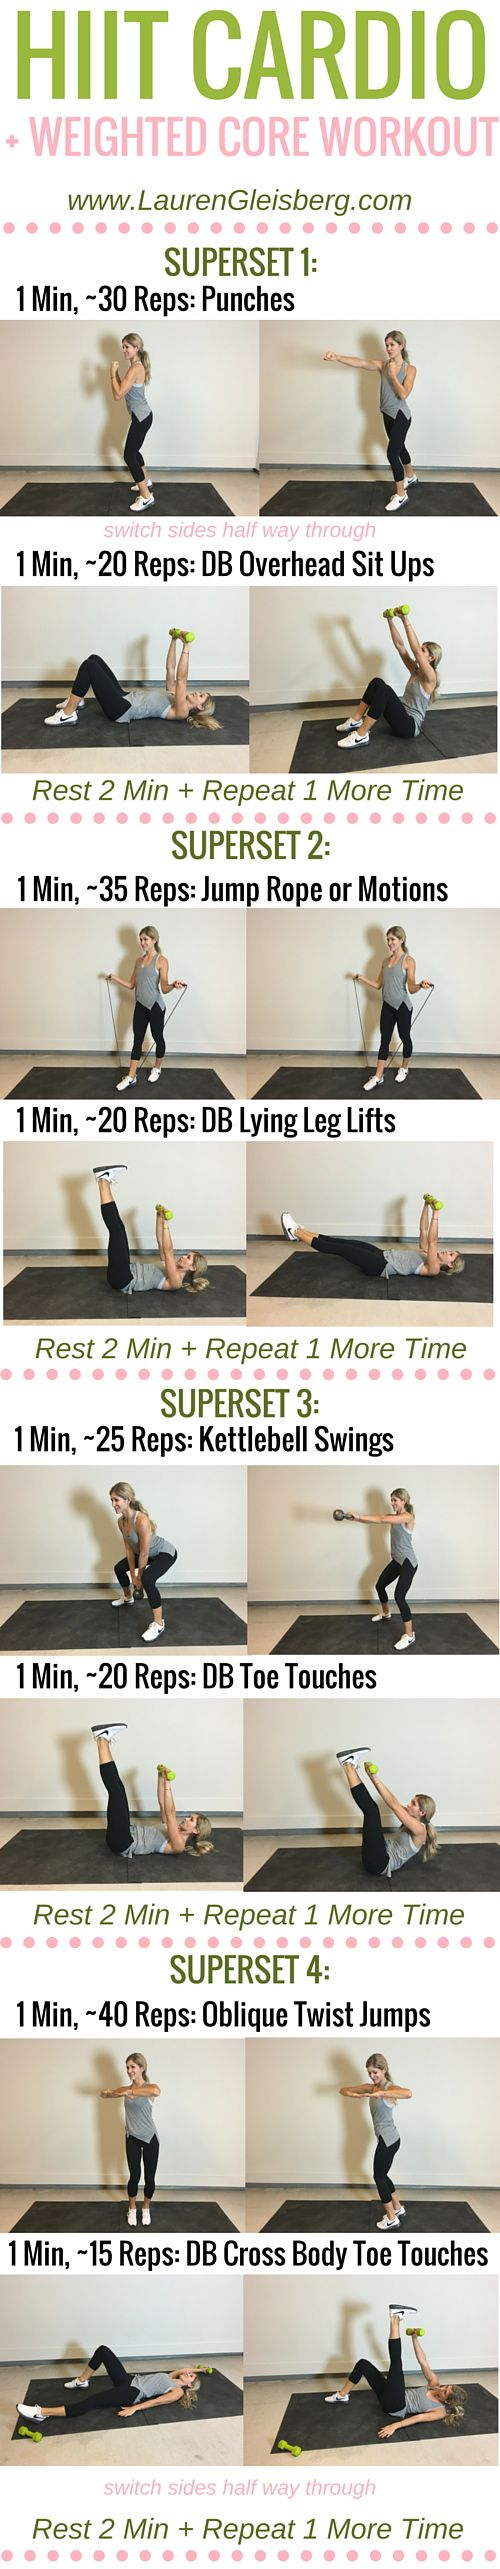 Week 5 Day 2   Home & Gym Version   HIIT Cardio + Weighted Core Workout   #LGFitmas Lauren Gleisberg